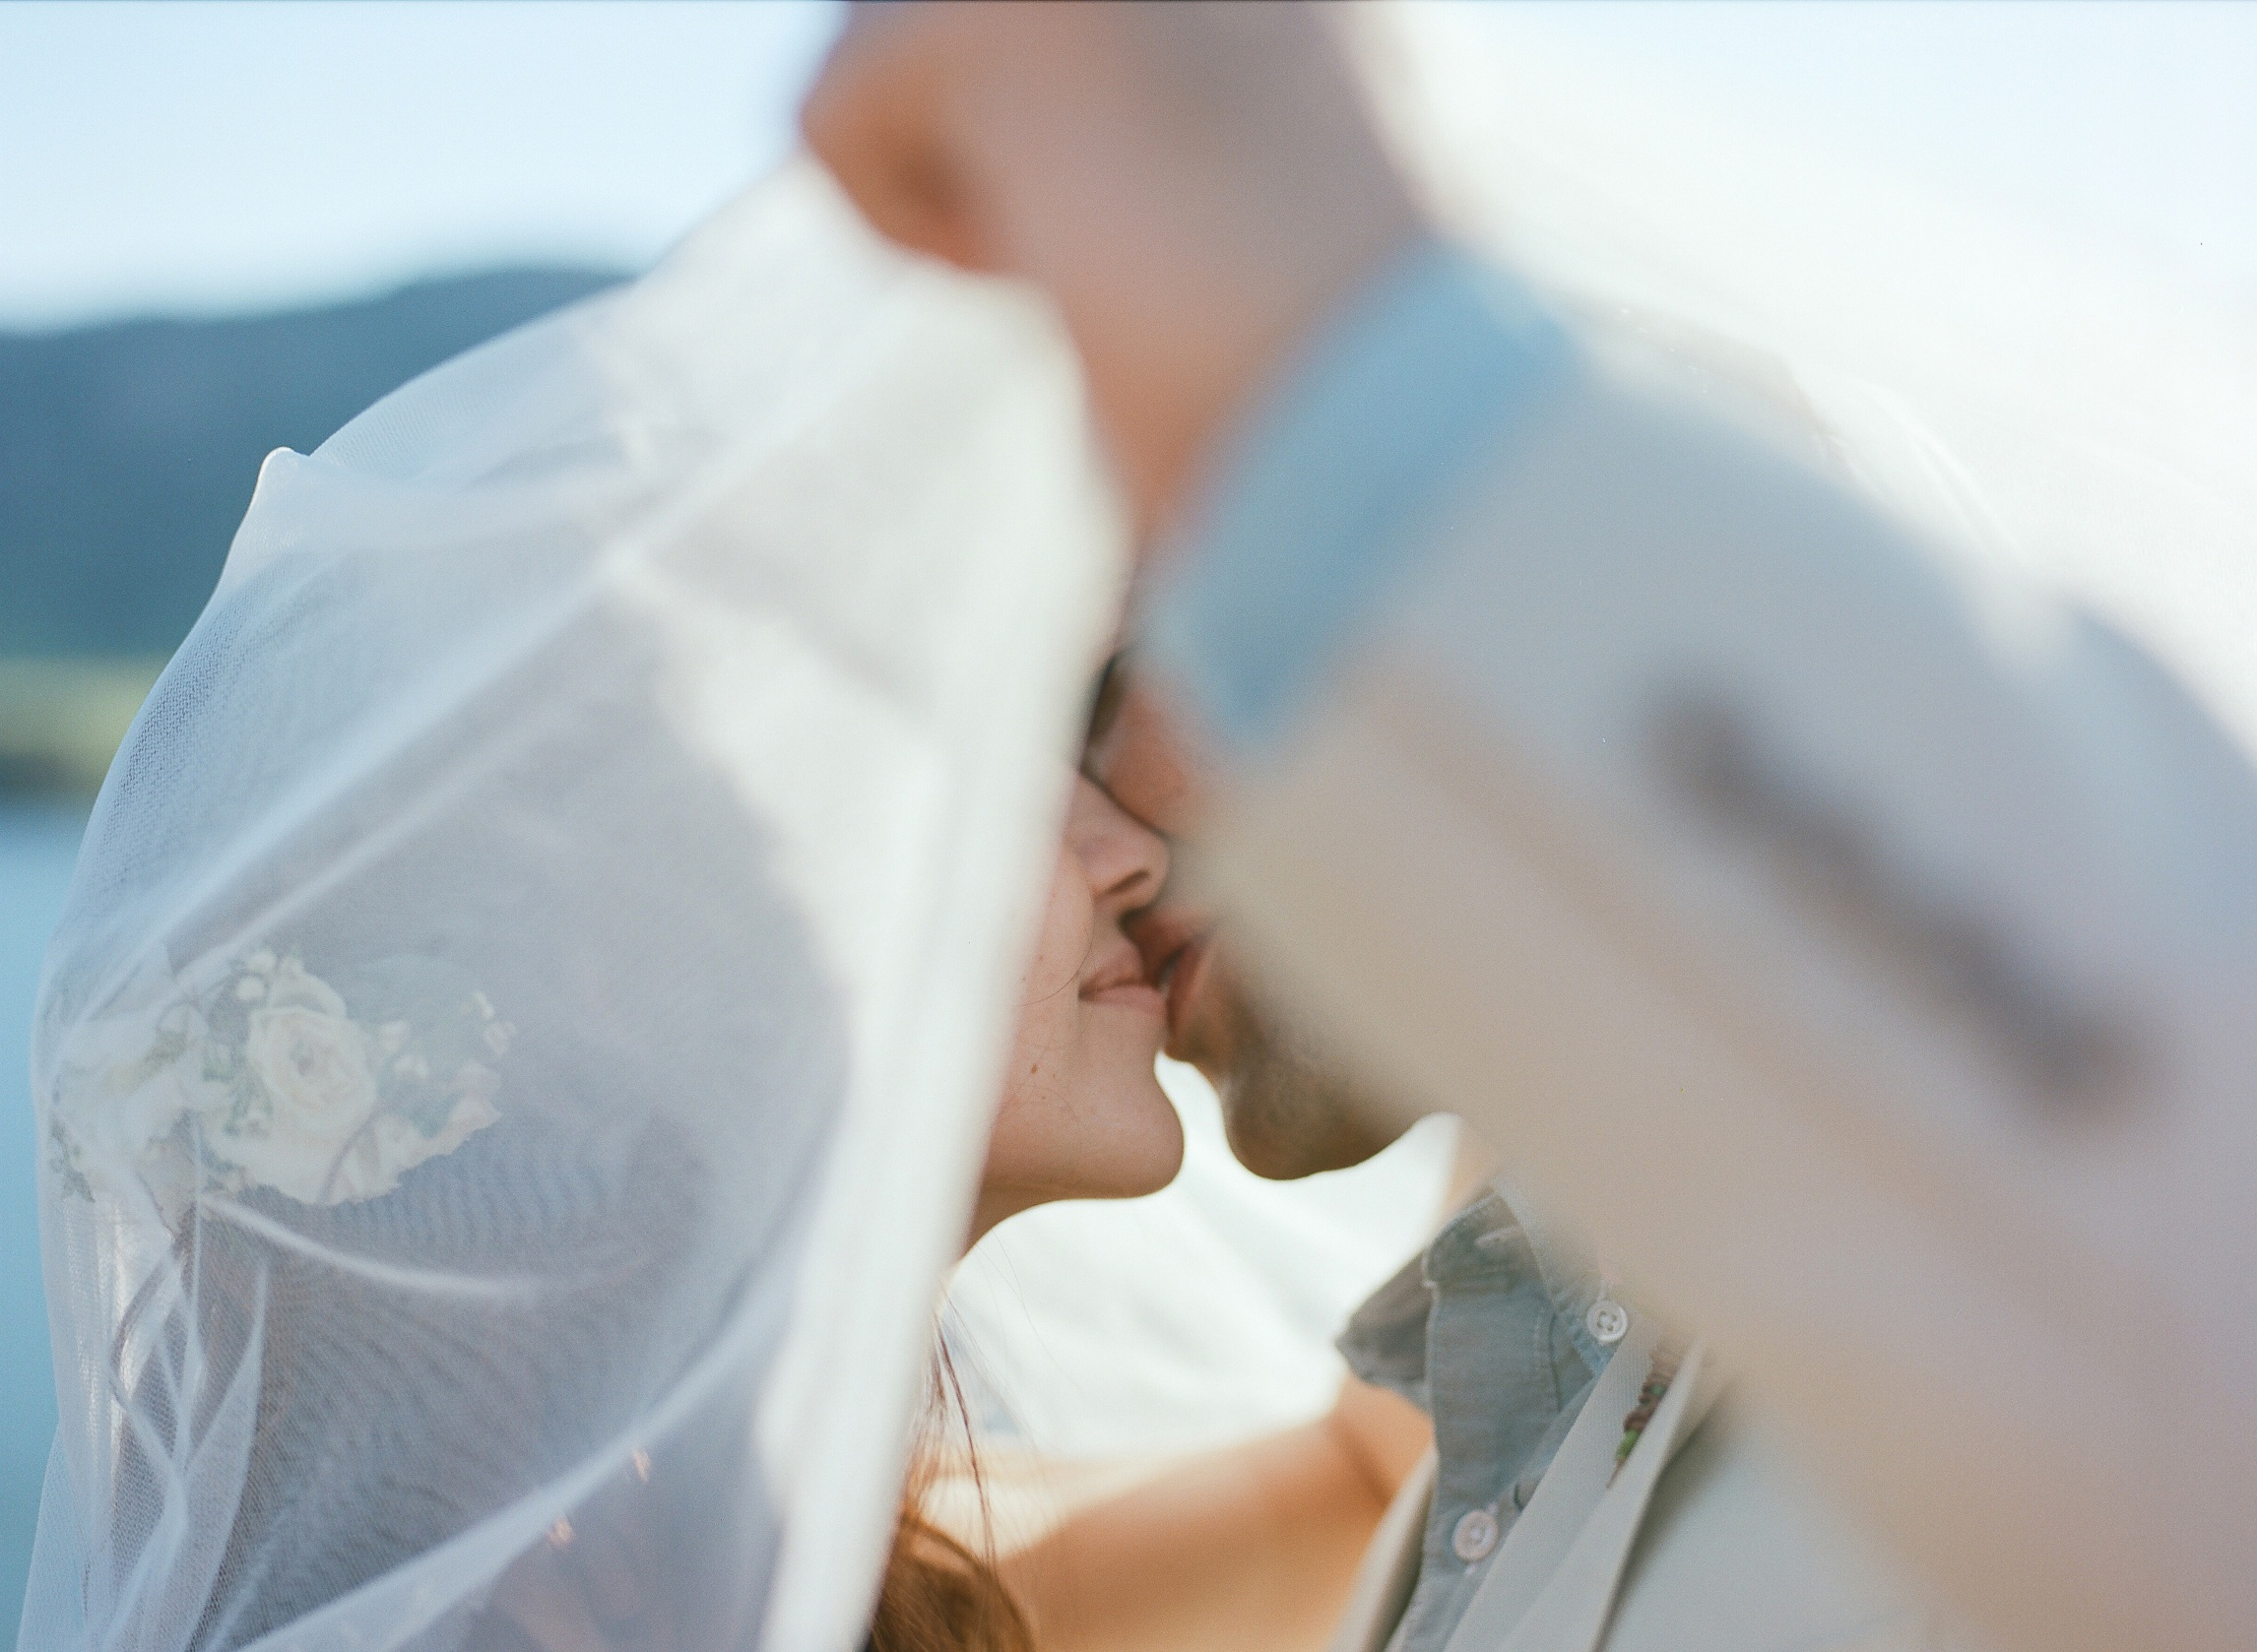 A bride and groom kiss on their wedding day. Wedding photography by Sonja Salzburg of Sonja K Photography.